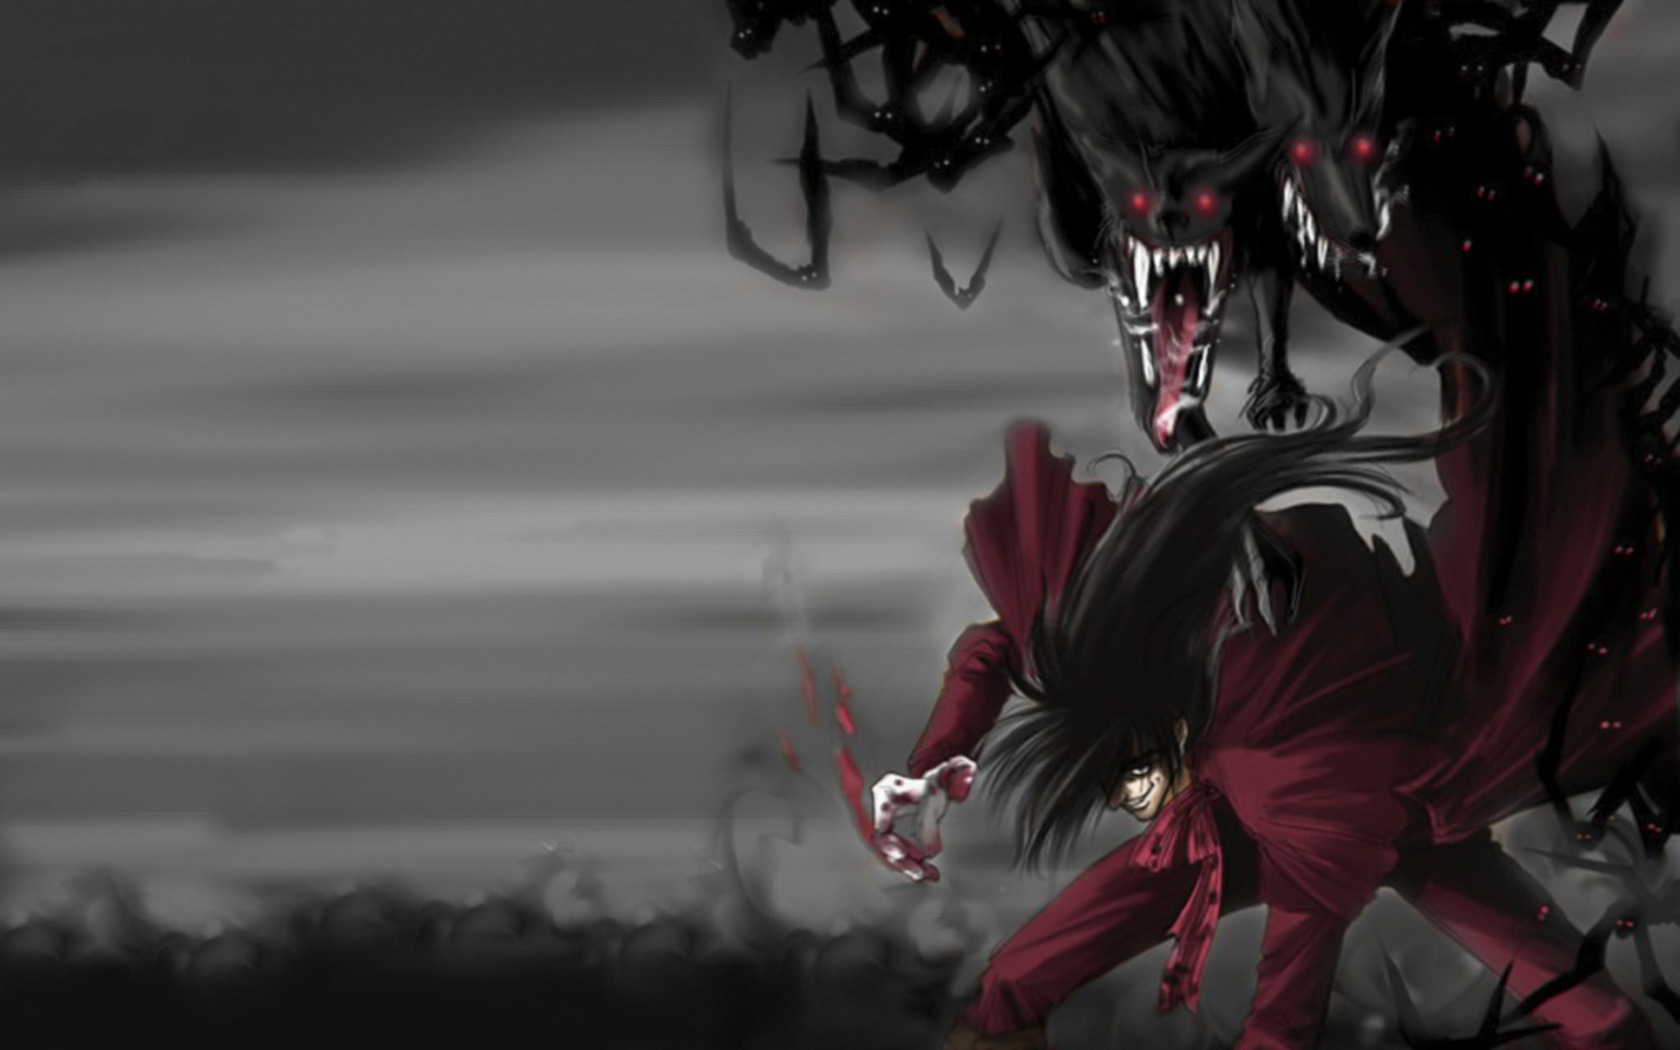 Hellsing wallpaper and background 1680x1050 id 537738 - Anime hellsing wallpaper ...